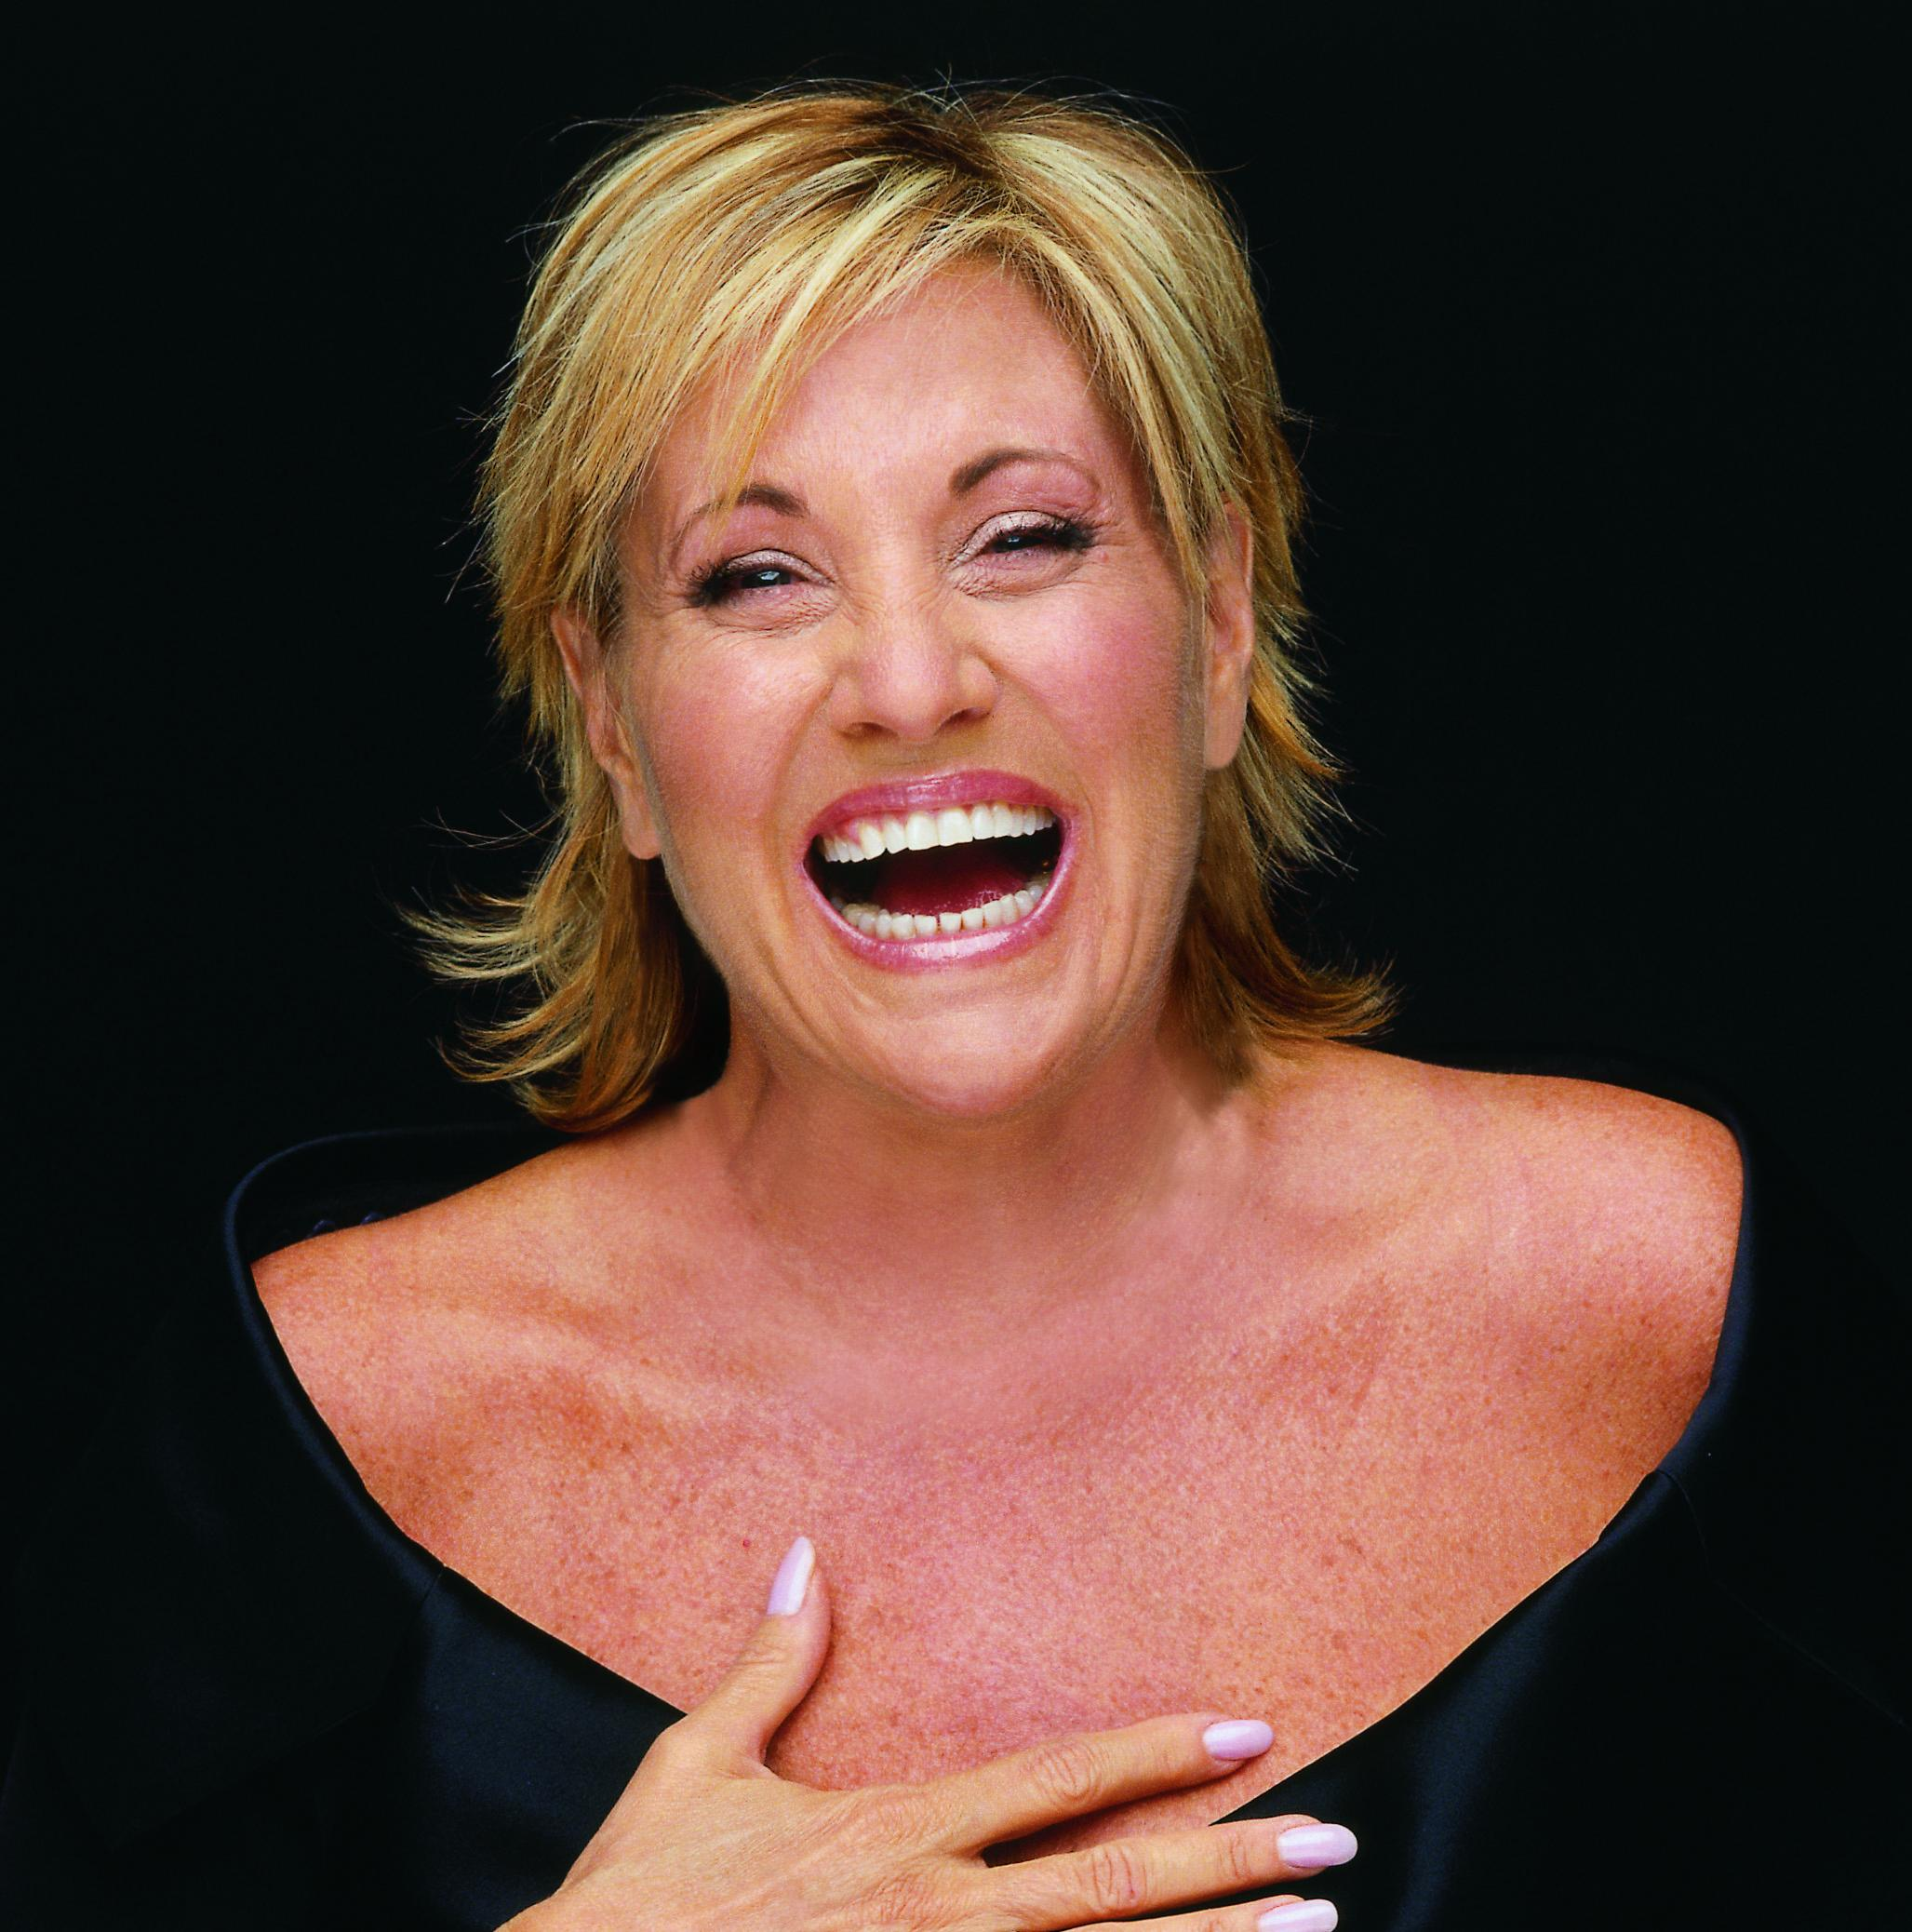 She's still got it, folks! (Image: Lorna Luft)<p></p>